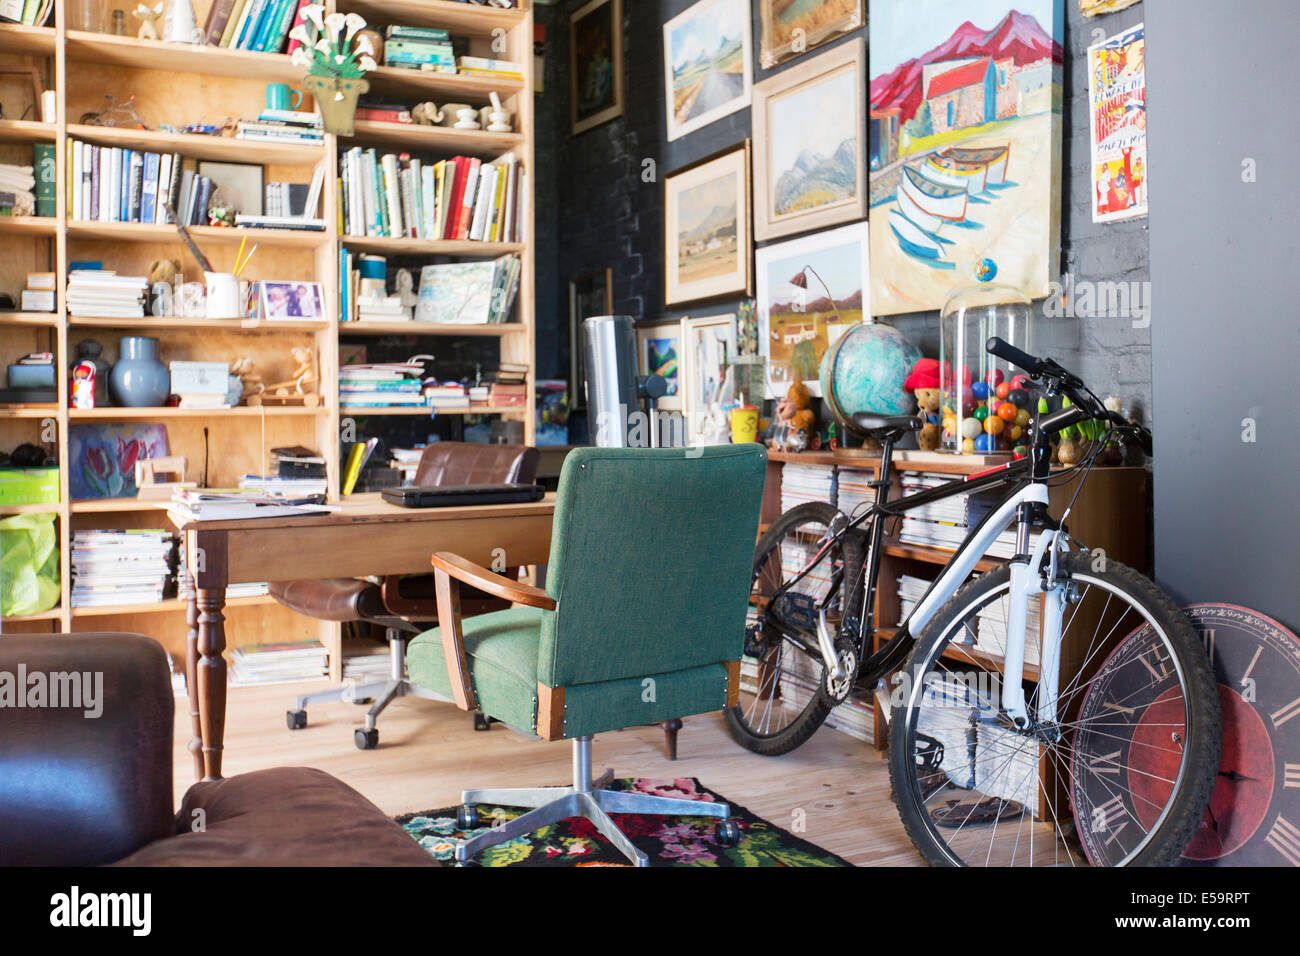 Desk, bookshelves and bicycle in study - Stock Image